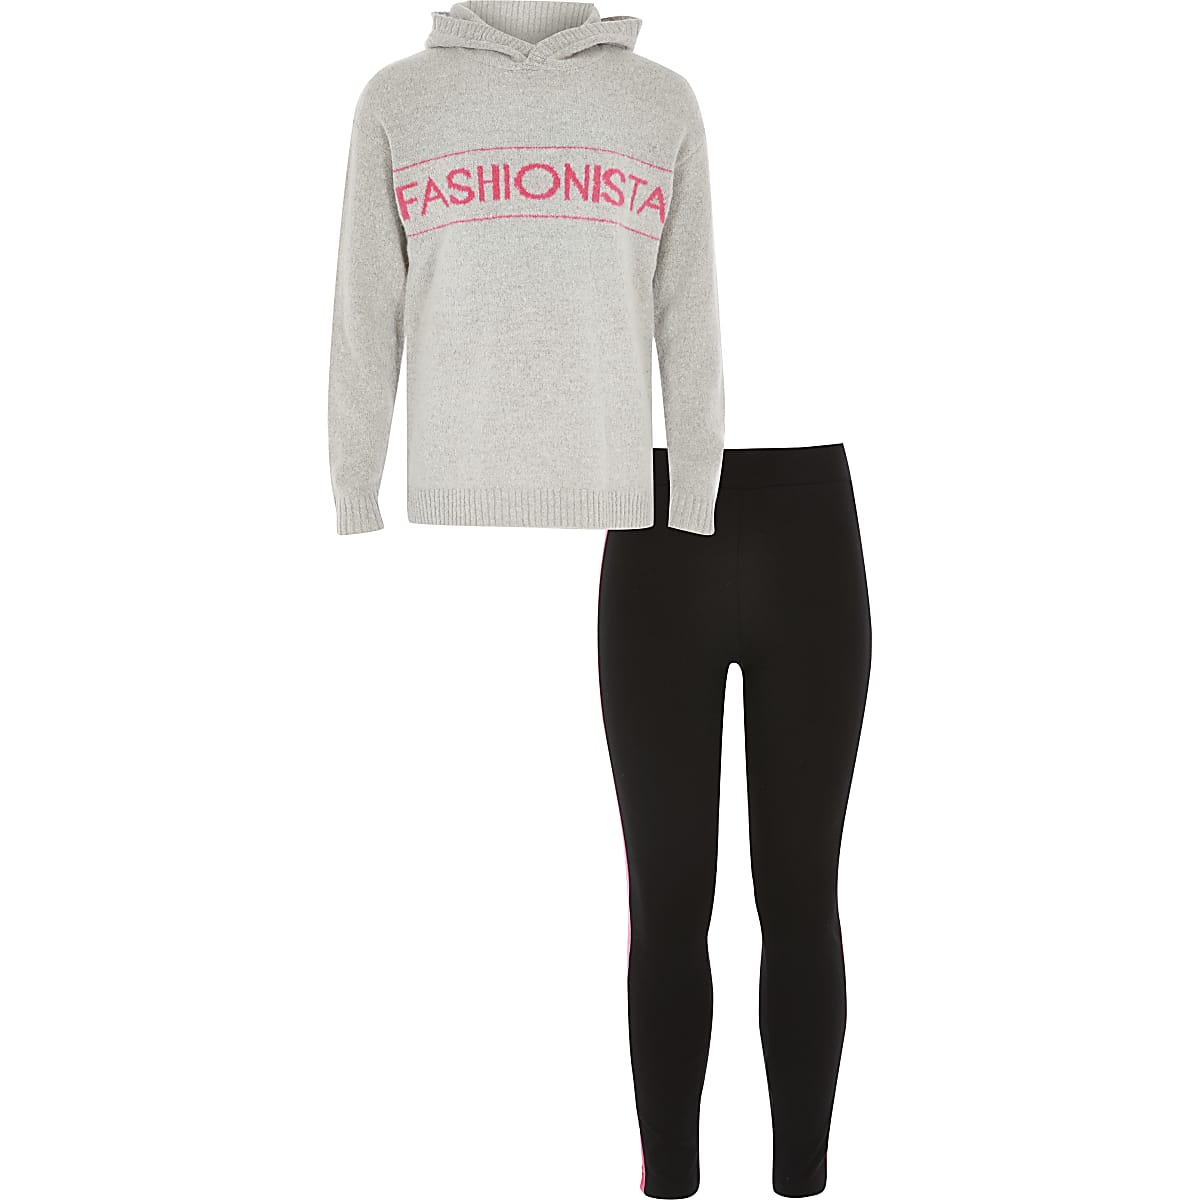 Girls grey 'Fashionista' knit hoodie outfit